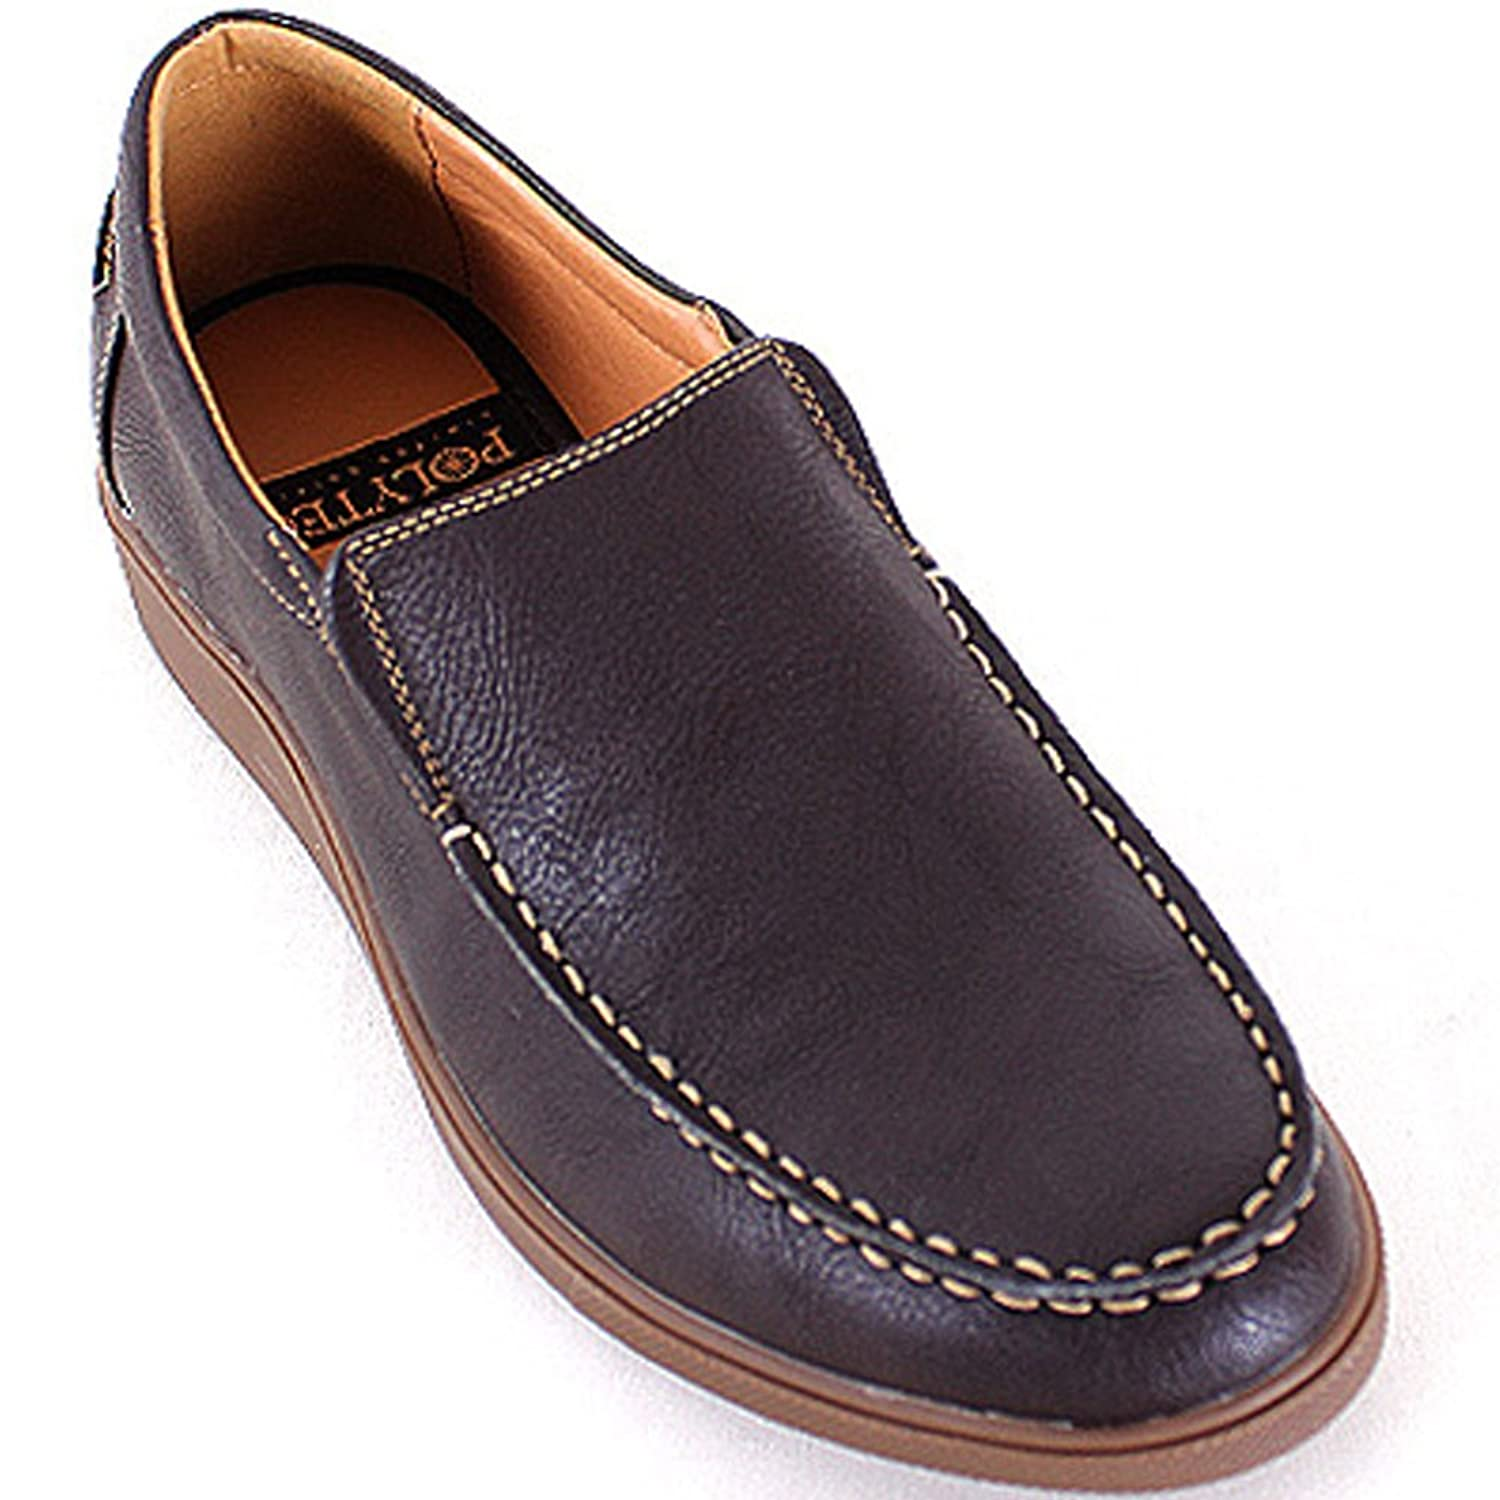 New Polytec Comfort Slip on Fashion Sneakers Men Casual Athletic Loafers Dress Shoes